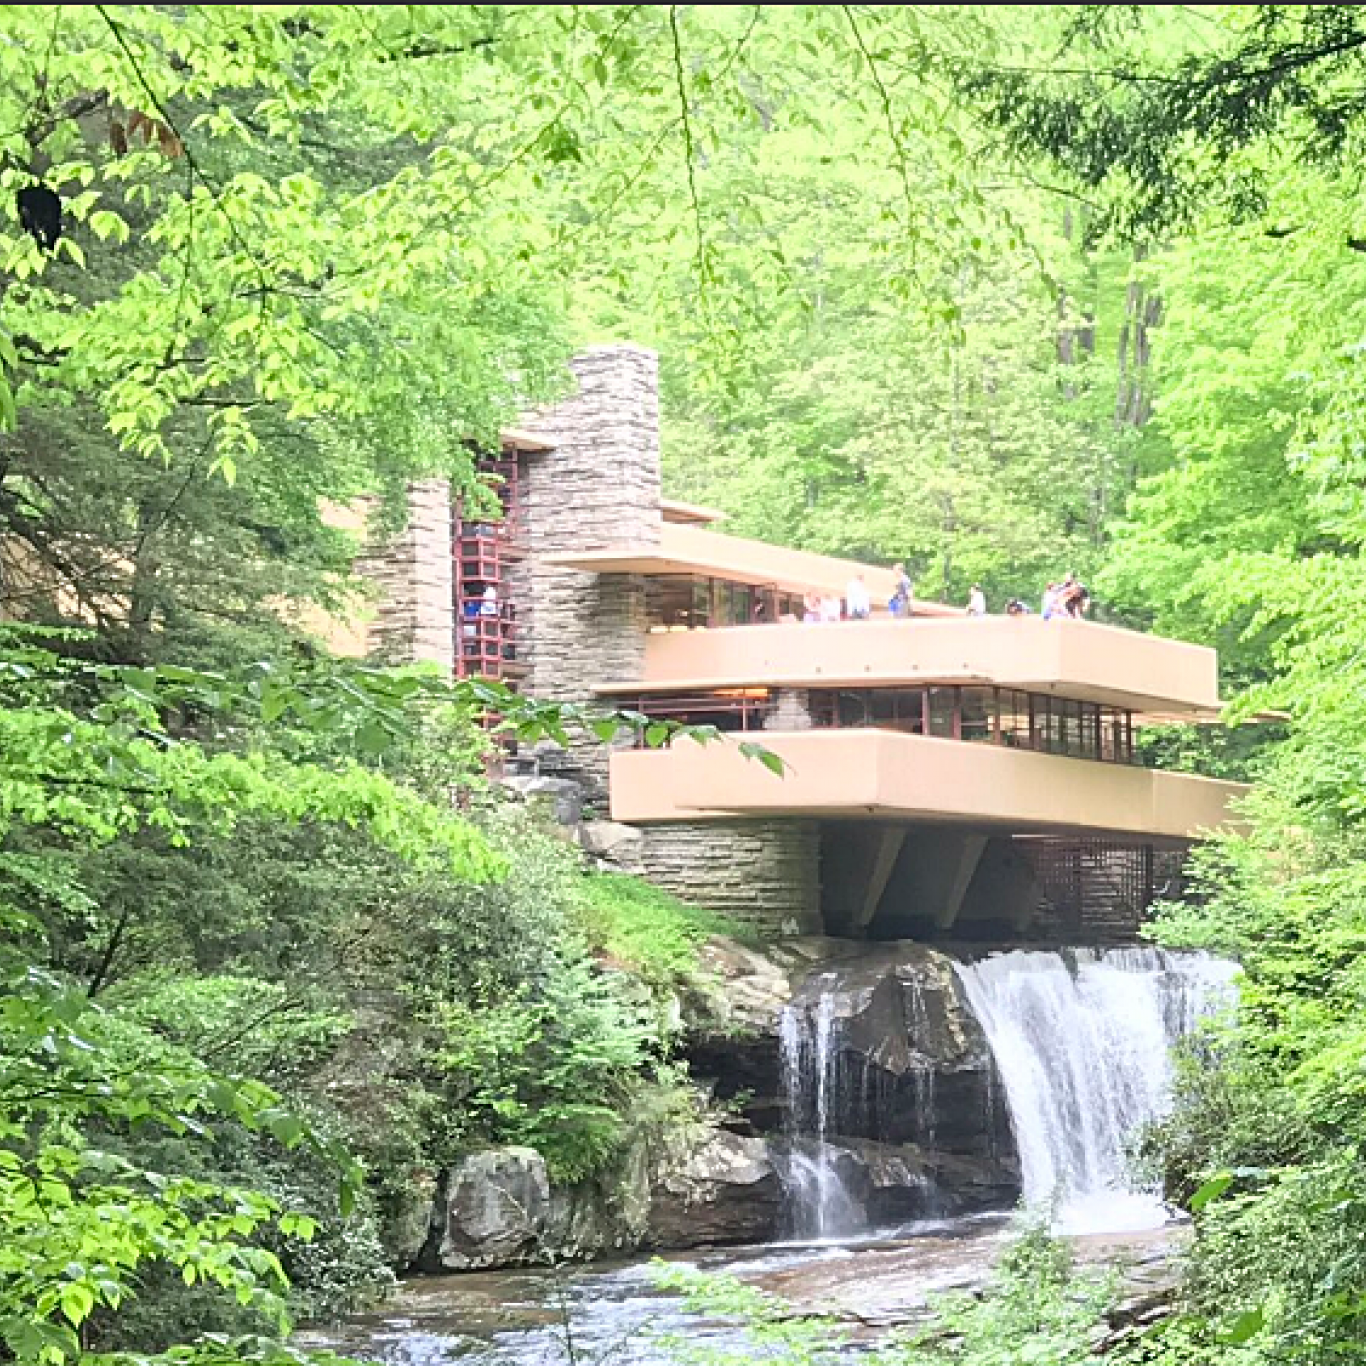 Modern house set in greenery with waterfall running into river.